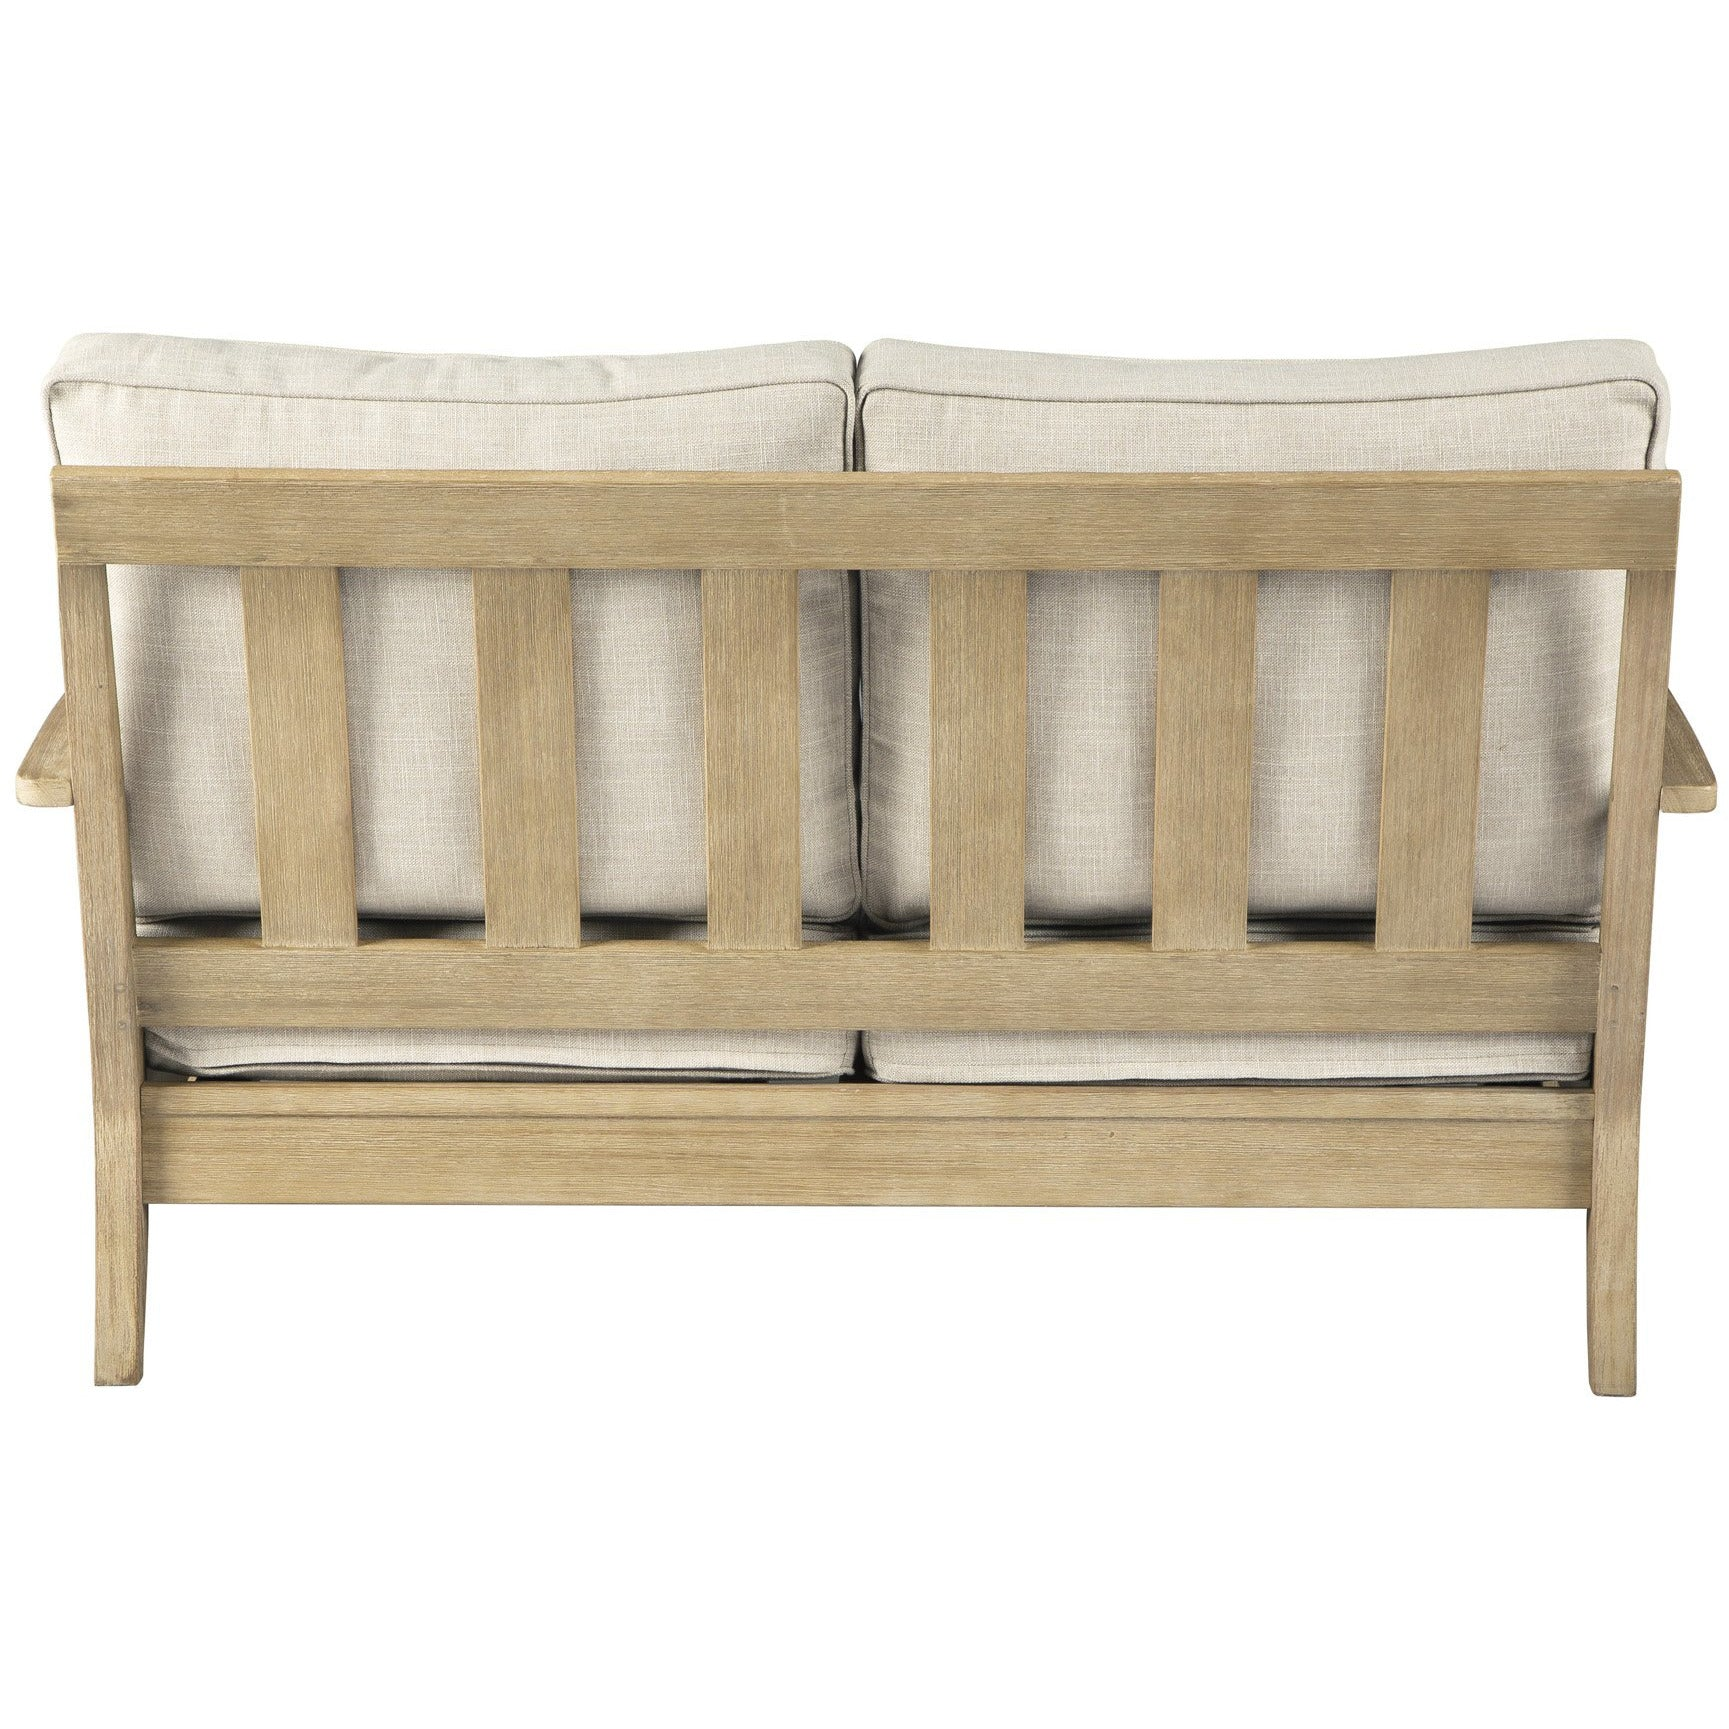 Clare View Loveseat with Cushions